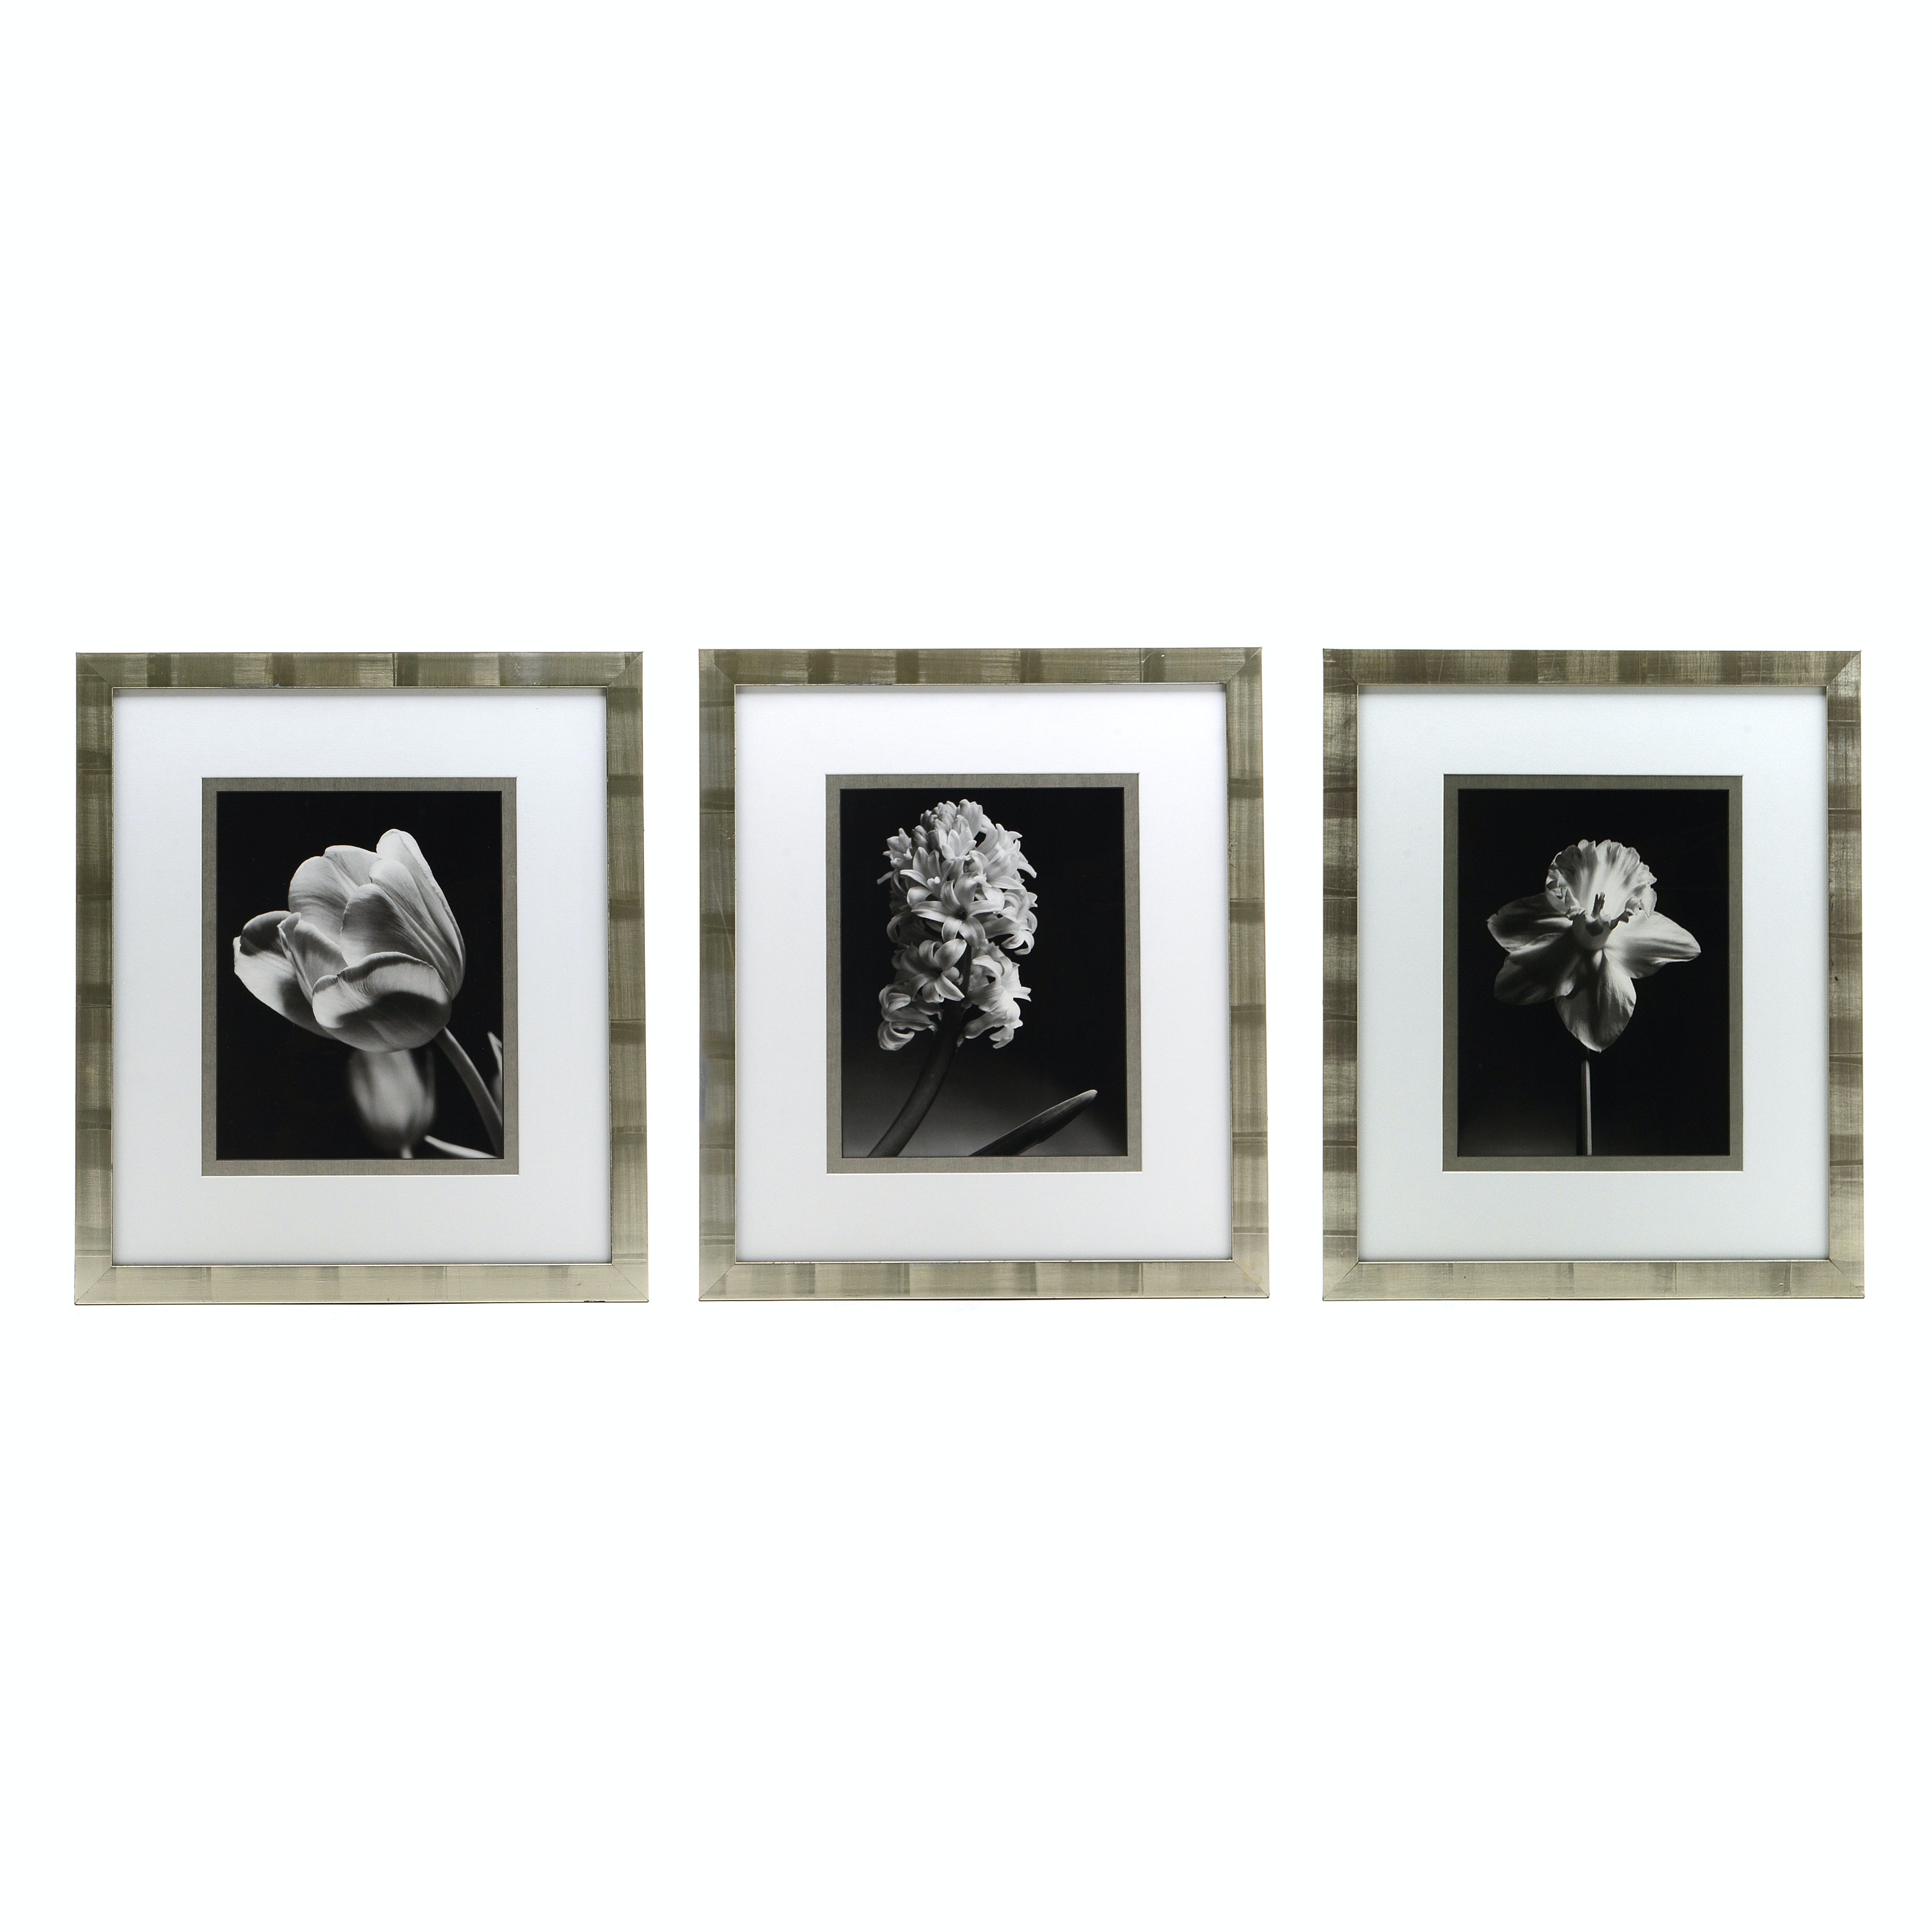 Three Photo Offset Lithographs in the Style of Robert Mapplethorp